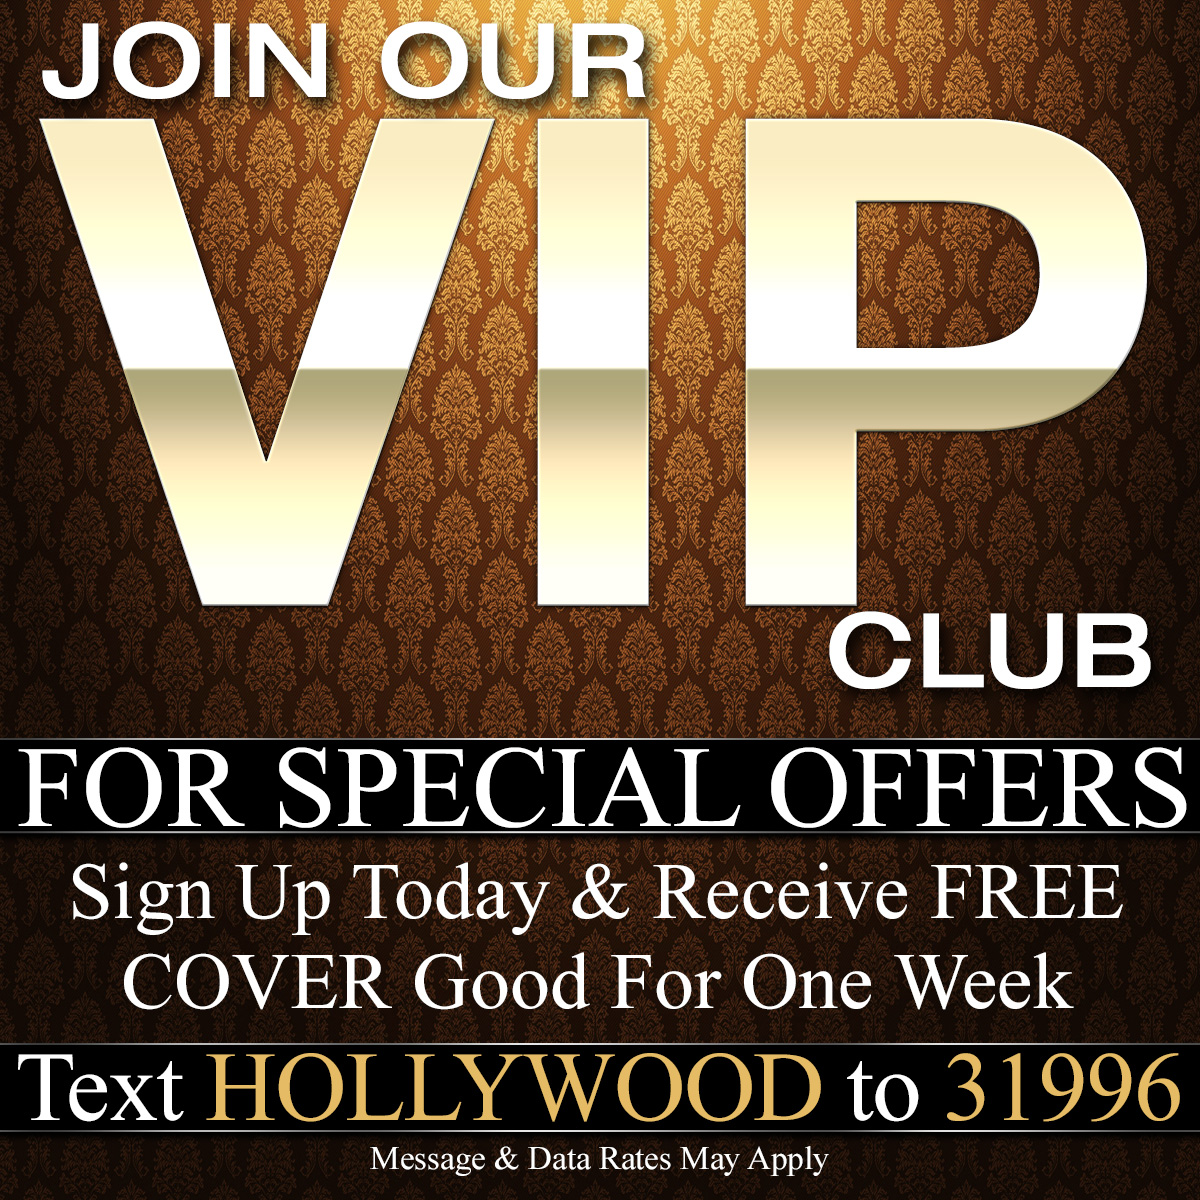 Text Hollywood To 31996 To Join Our VIP Mobile Membership